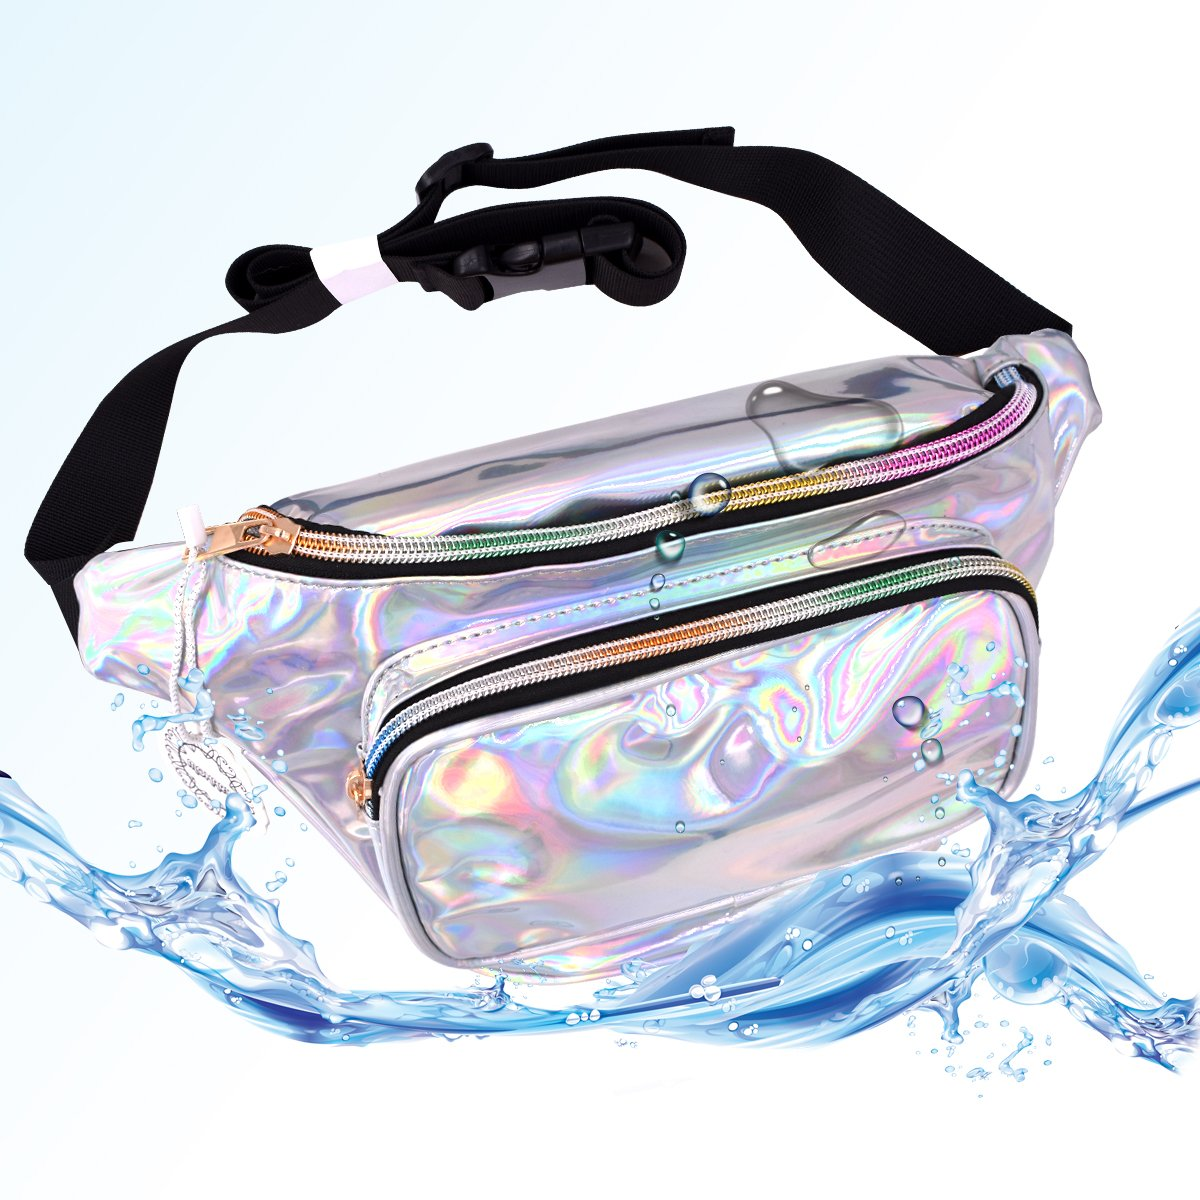 Water Resistant Shiny Neon Fanny Bag for Women Rave Festival Hologram Bum Travel Purse Waist Pack by MOHARY (Image #2)